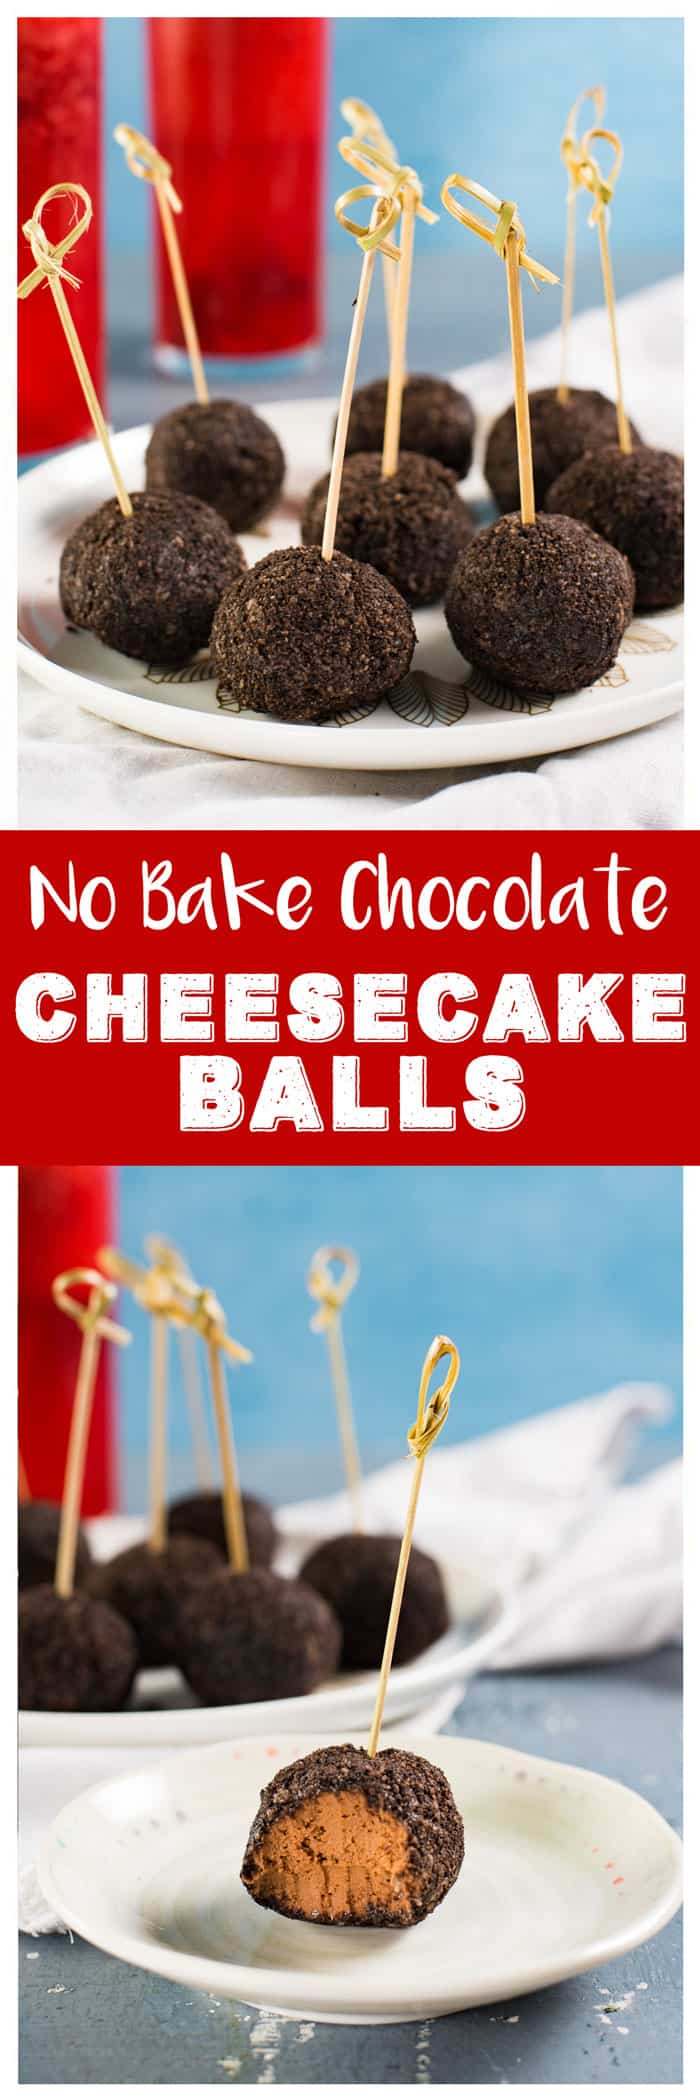 Deliciously Creamy No Bake Chocolate Cheesecake Bites, are perfect for any gathering - from holiday entertaining to party snacking. With a little bourbon, these boozy bite sized treats will be a devoured in minutes! #bitesized #truffles #nobake #chocolate